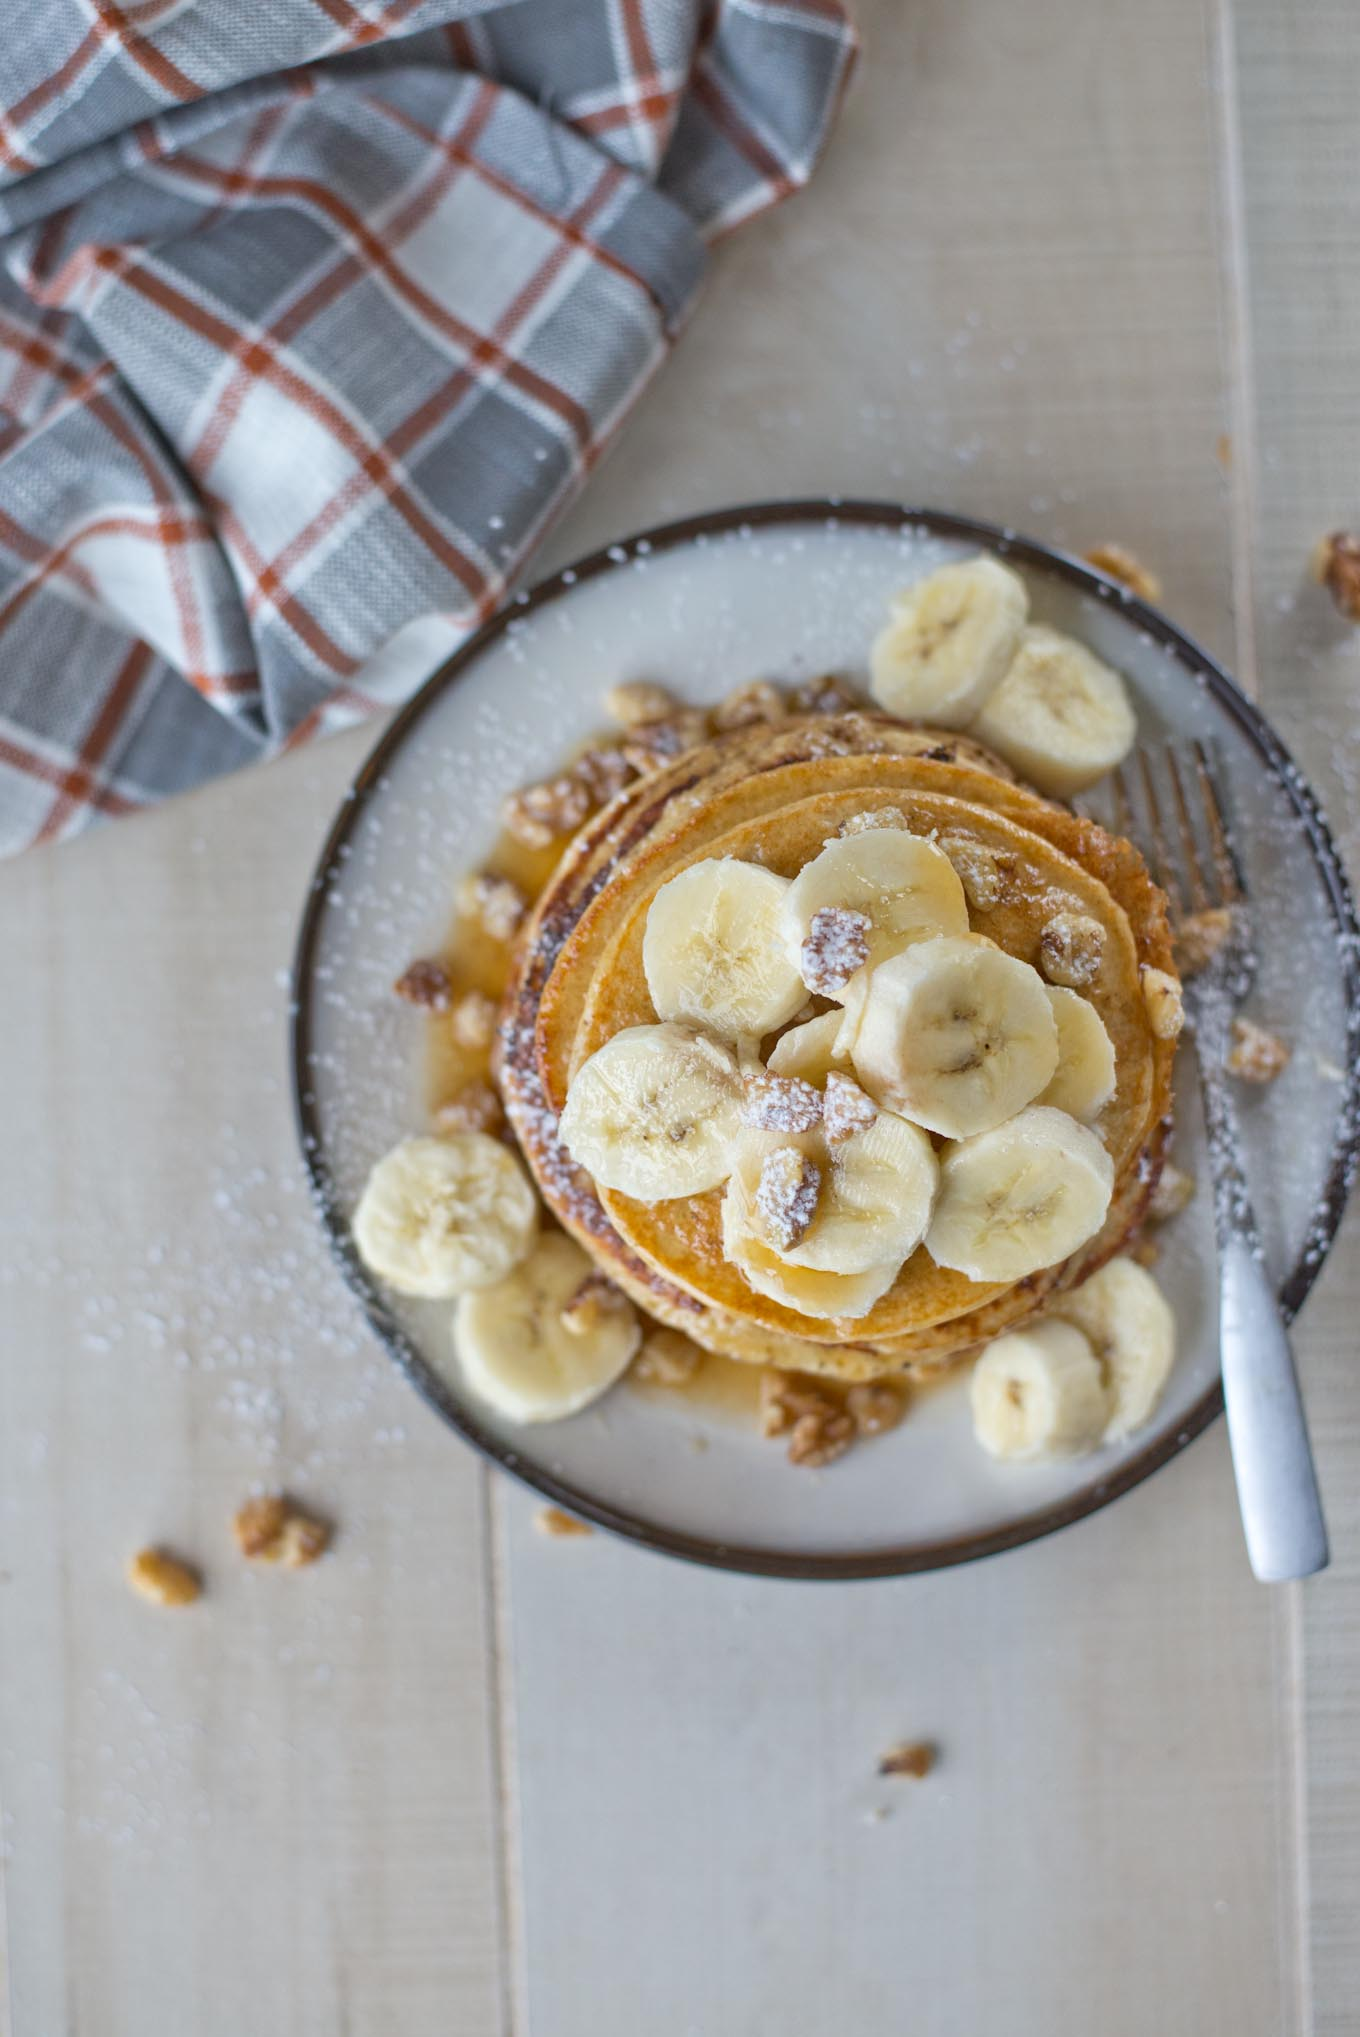 The quickest and fluffiest pancakes you'll ever have. Ready in just 10 minutes.